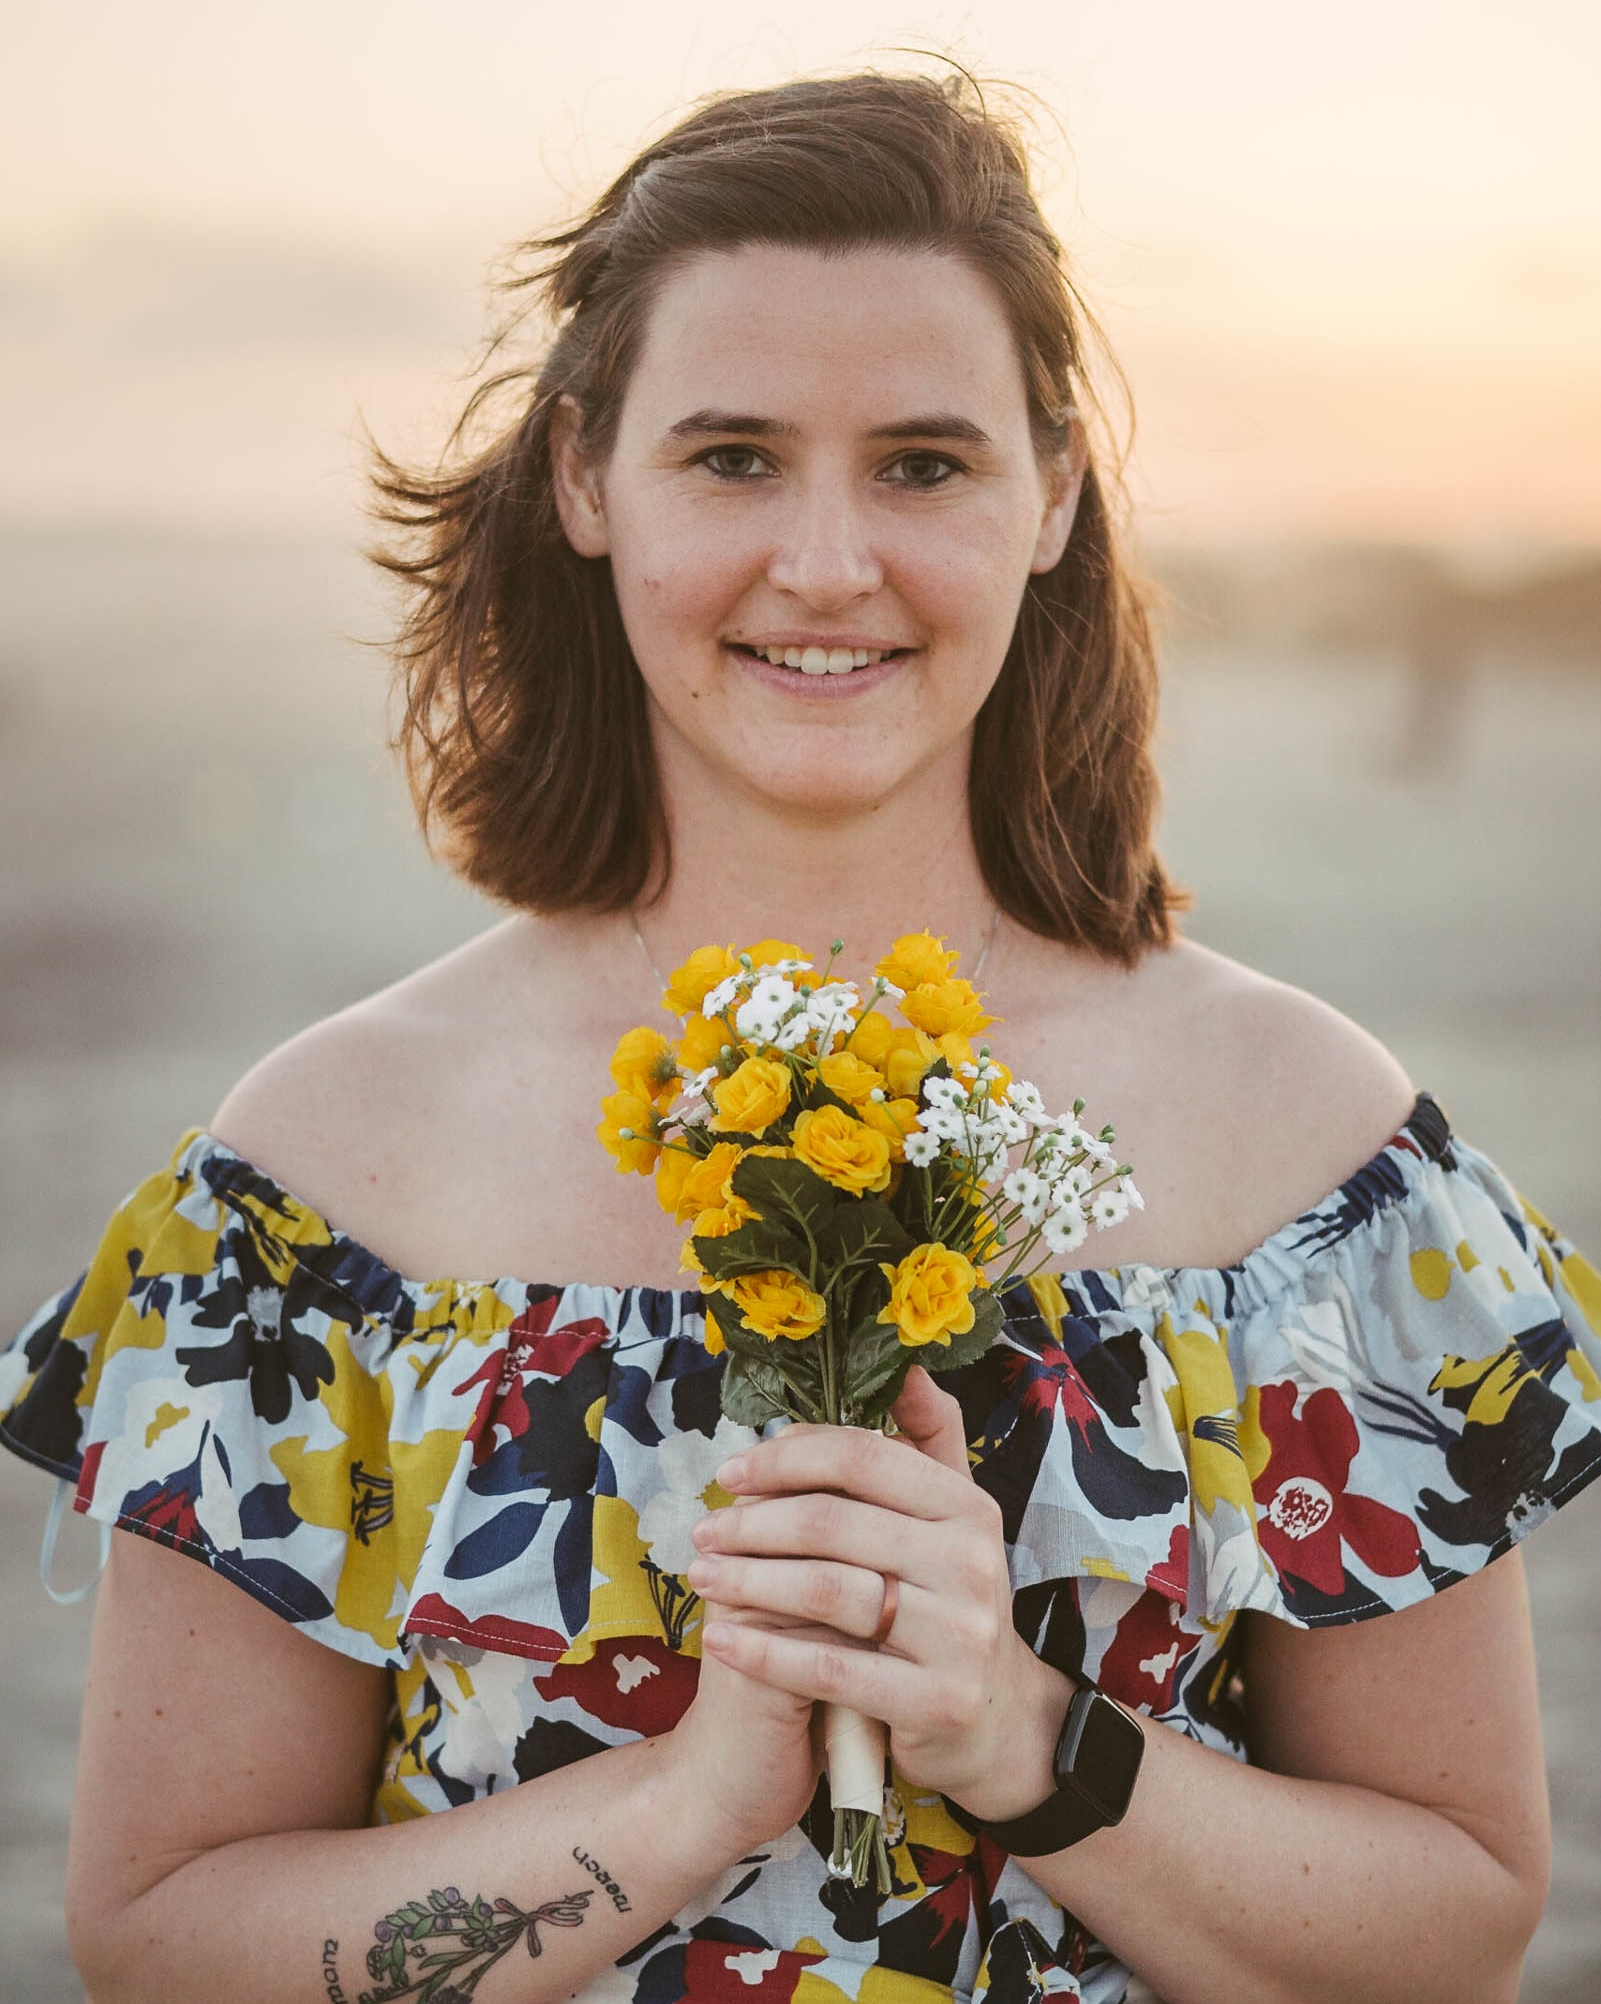 engagement session coronado island sunset san diego california white girl yellow flowers blue red dress